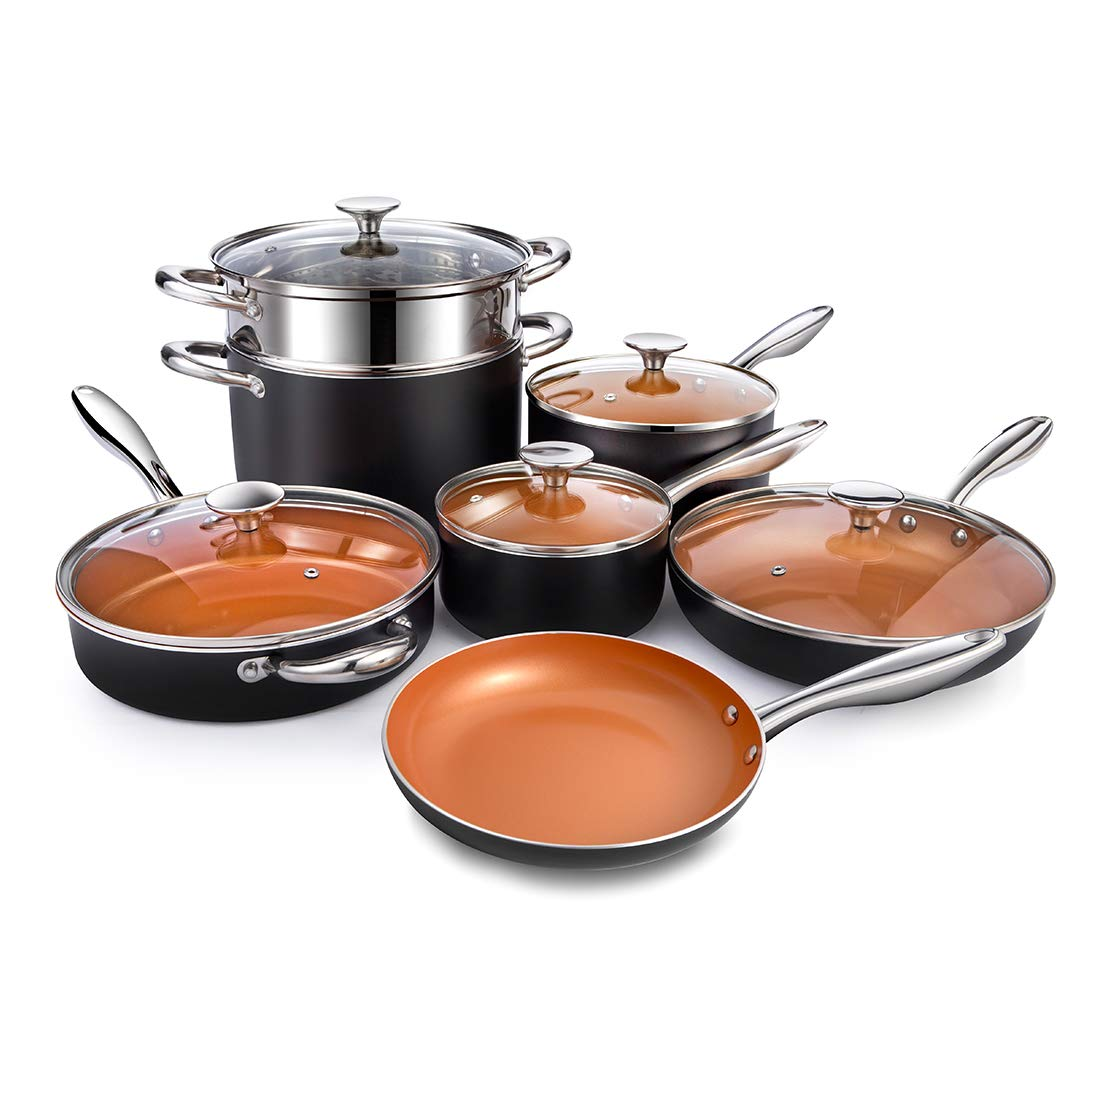 MICHELANGELO Nonstick Copper Pots and Pans Set, 12-Piece